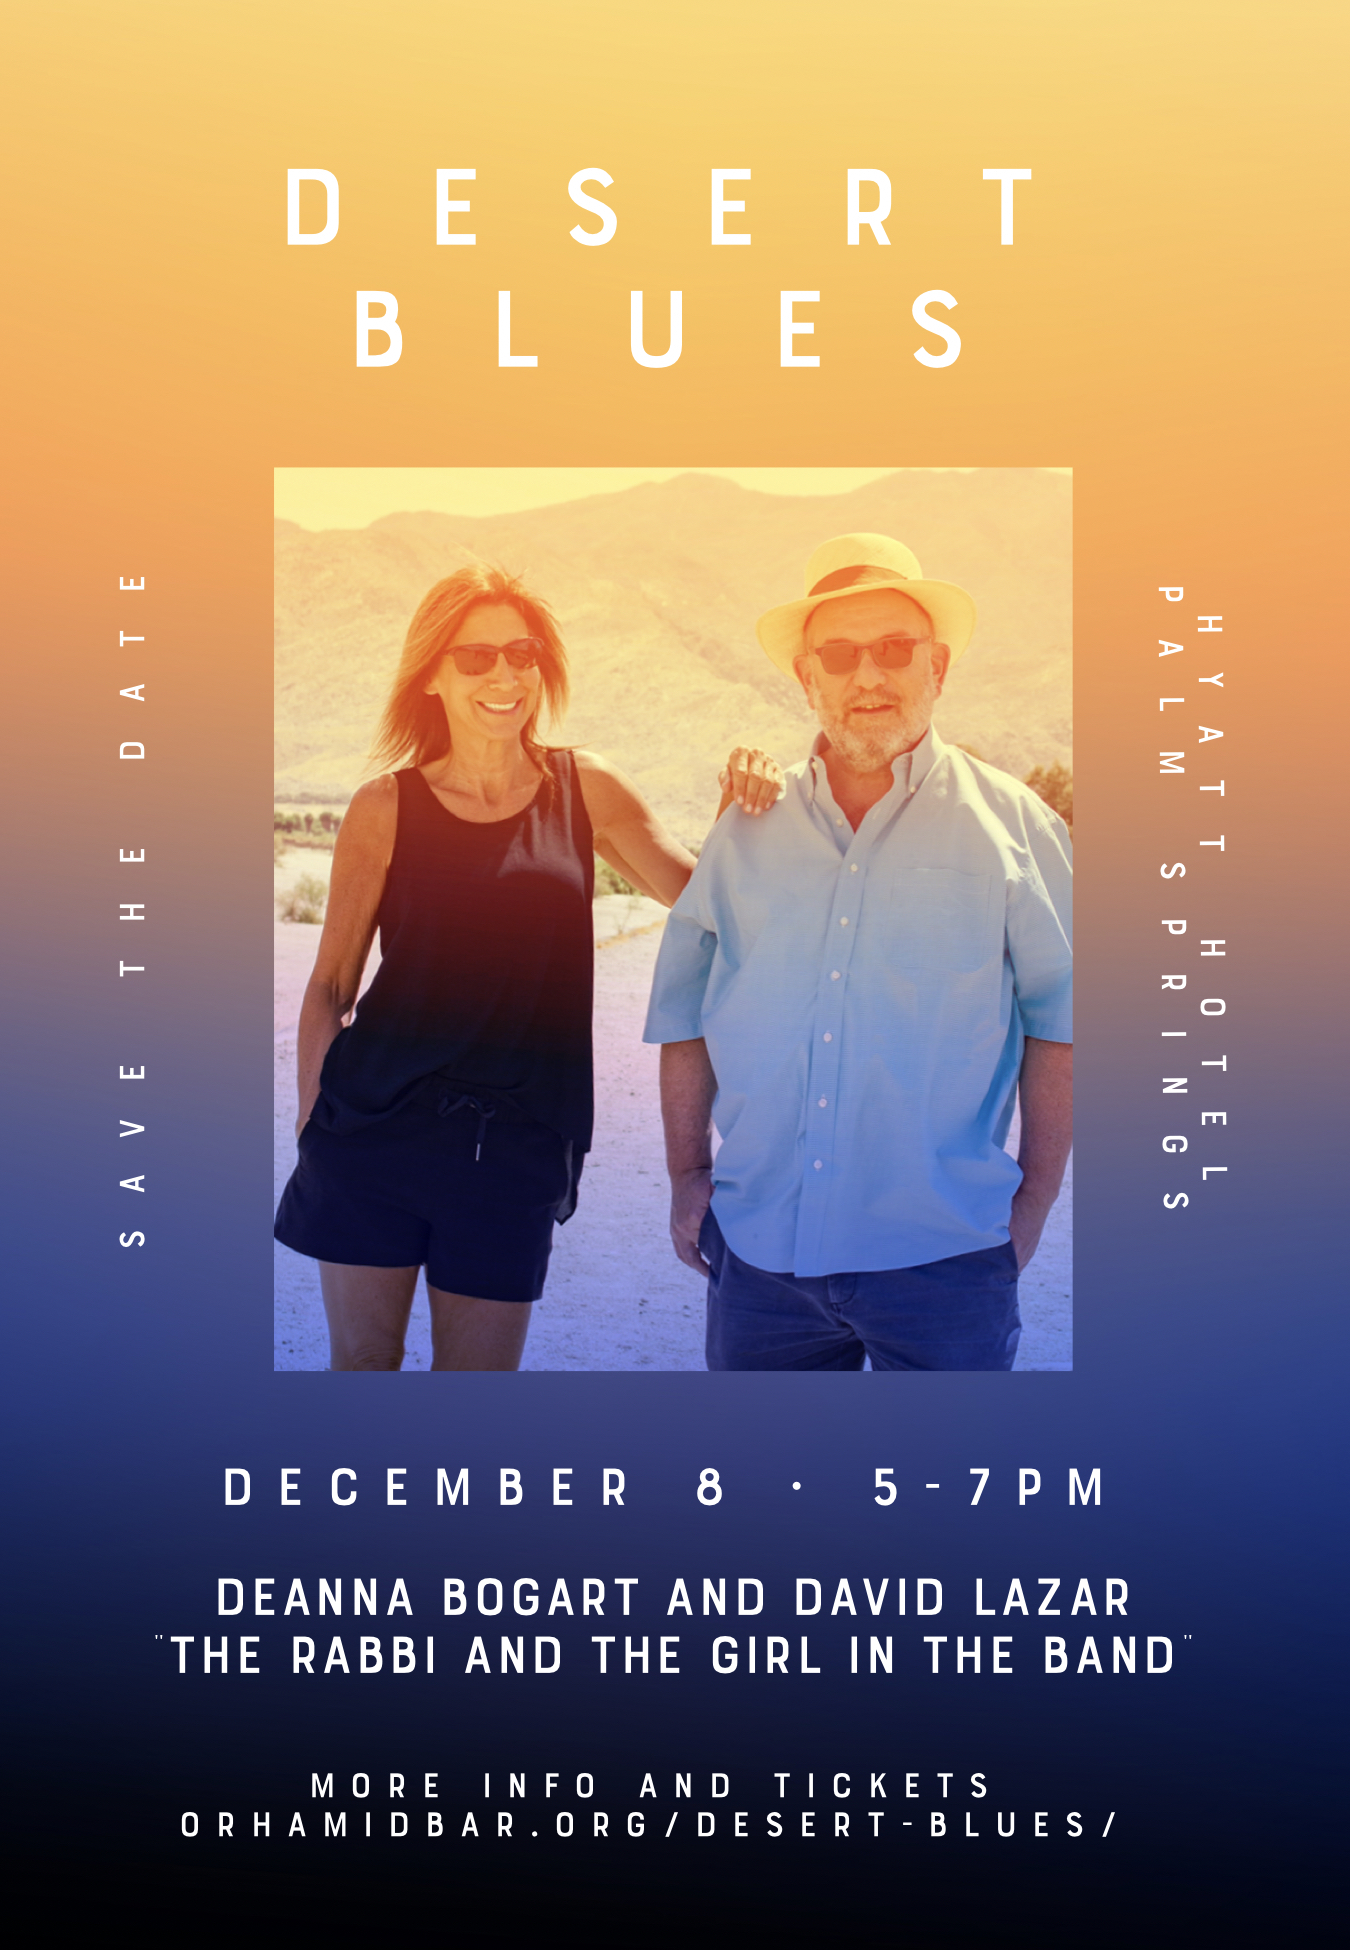 Desert Blues Concert Palm Springs - Deanna Bogart - - Or Hamidbar - Rabbi David Lazar - Synagogue Palm Springs Jewish Community